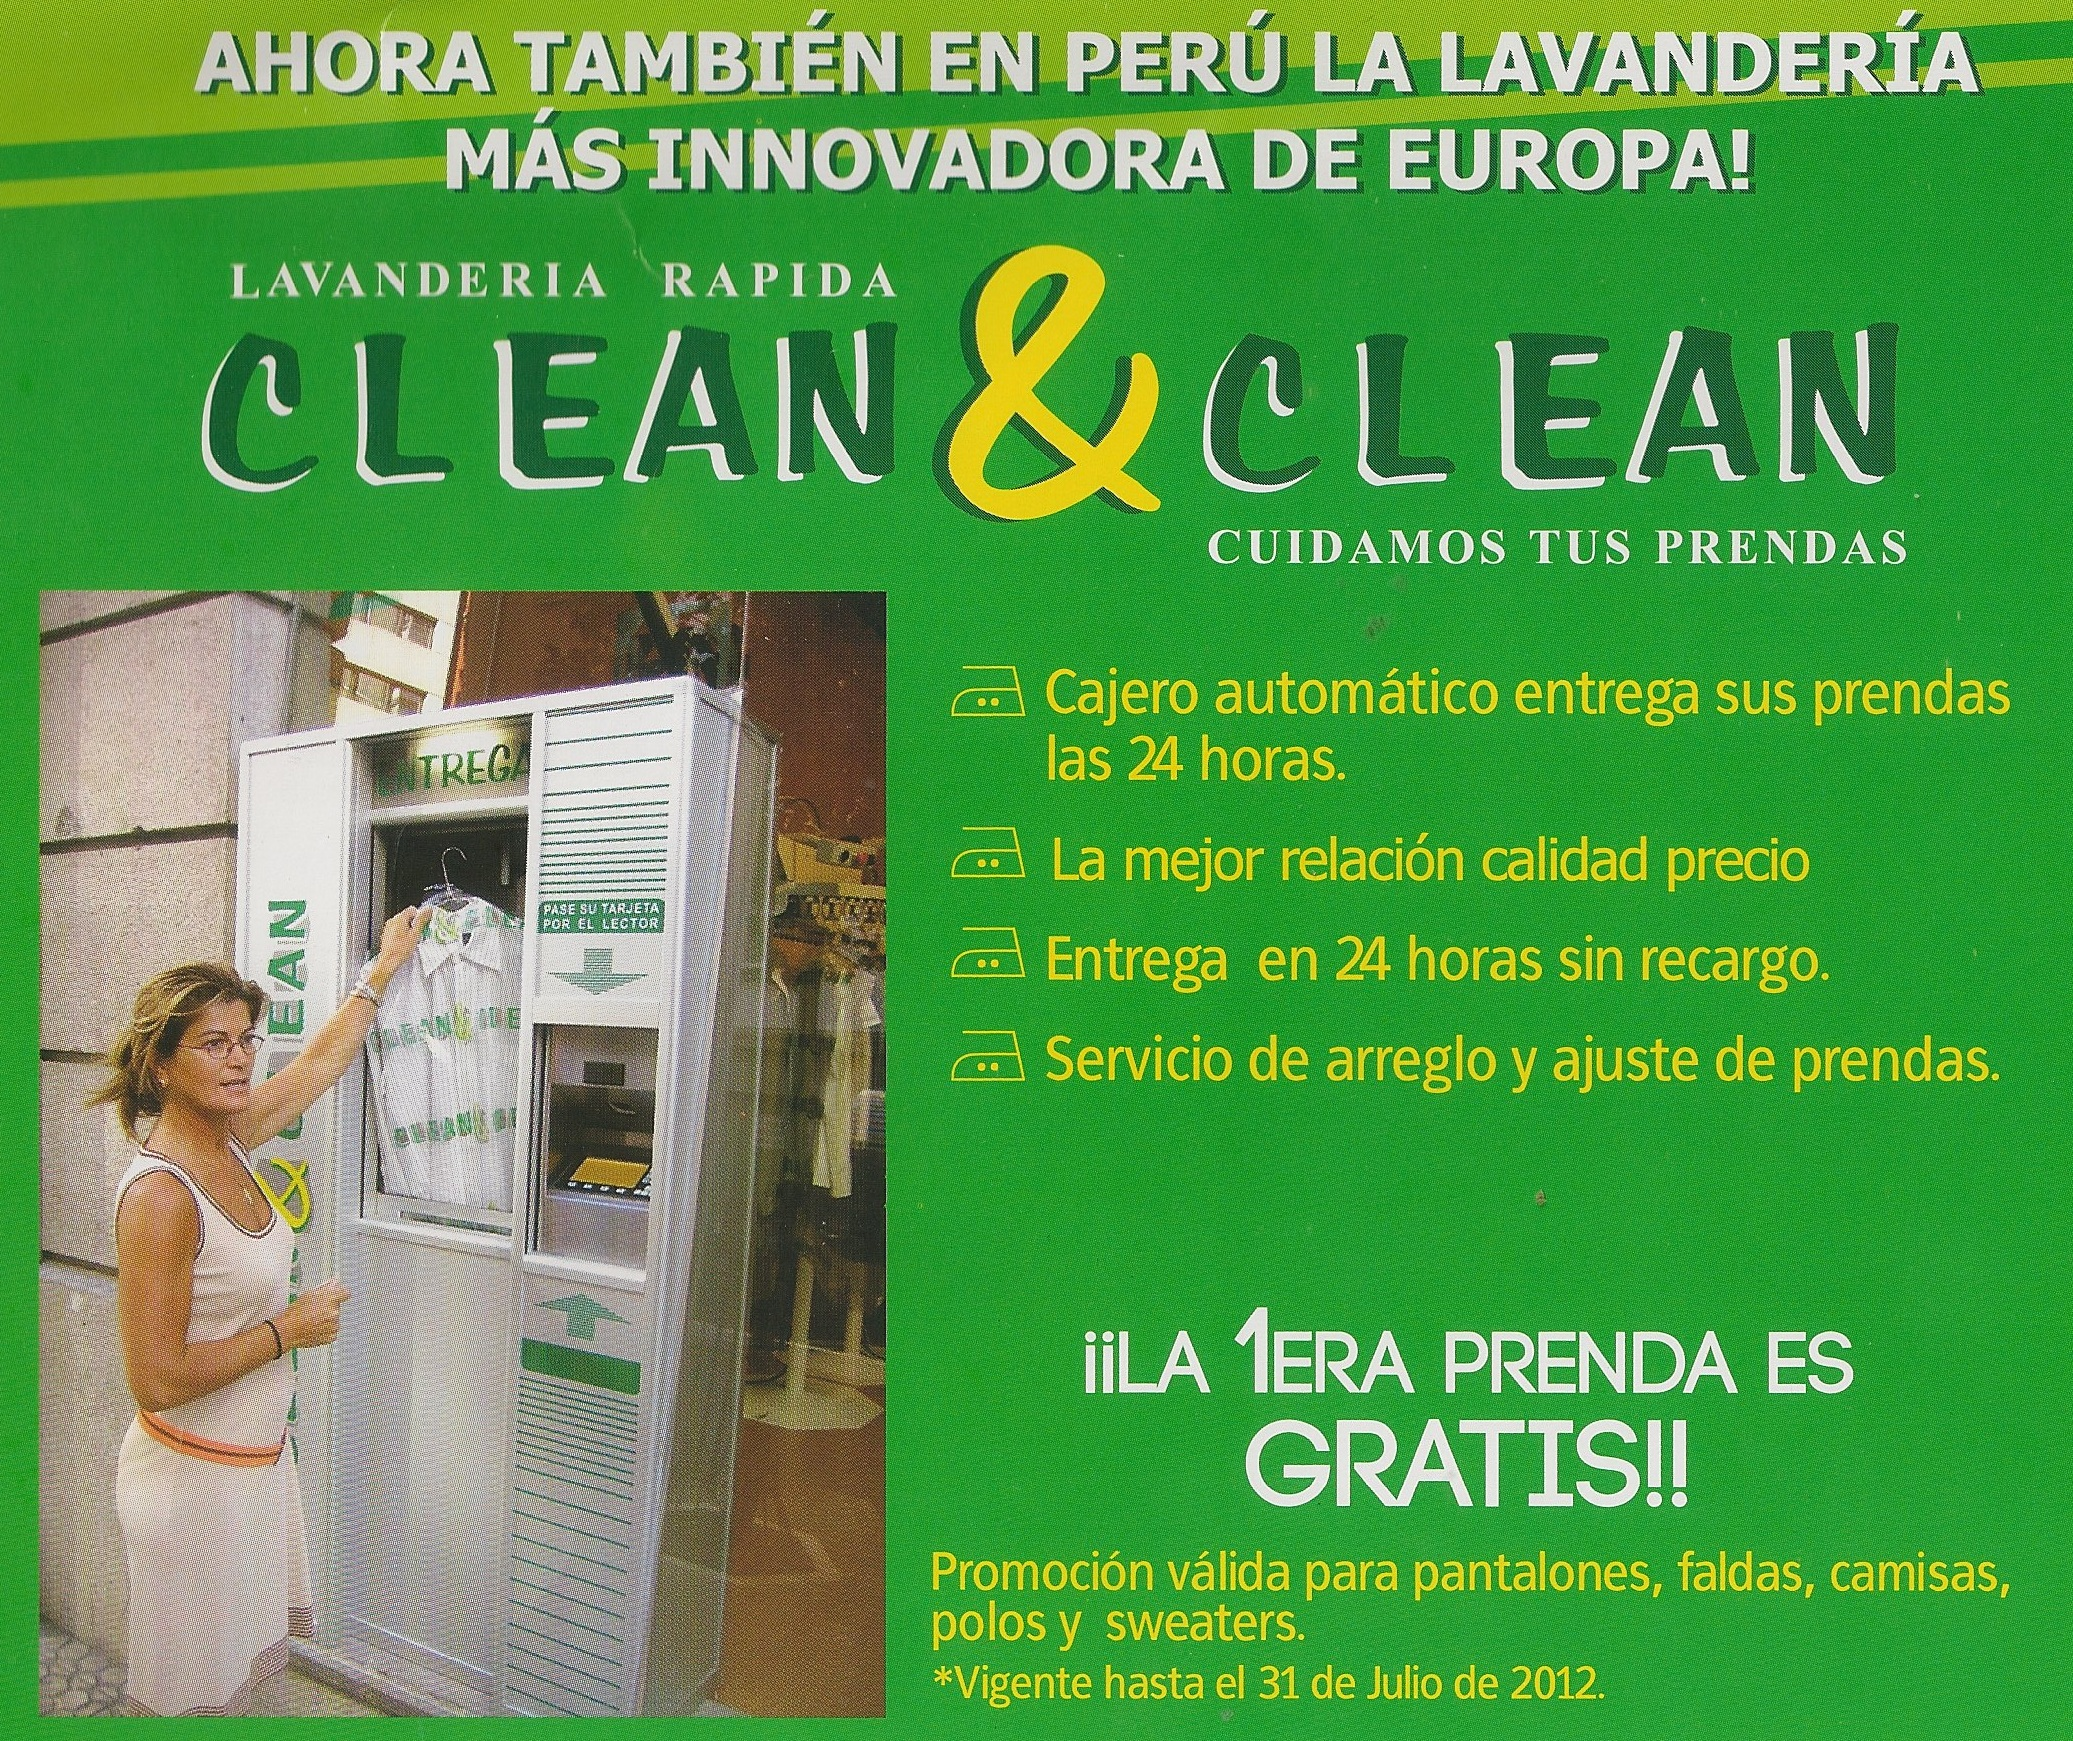 dry cleaning sin polaris ad for dry cleaning service in lima